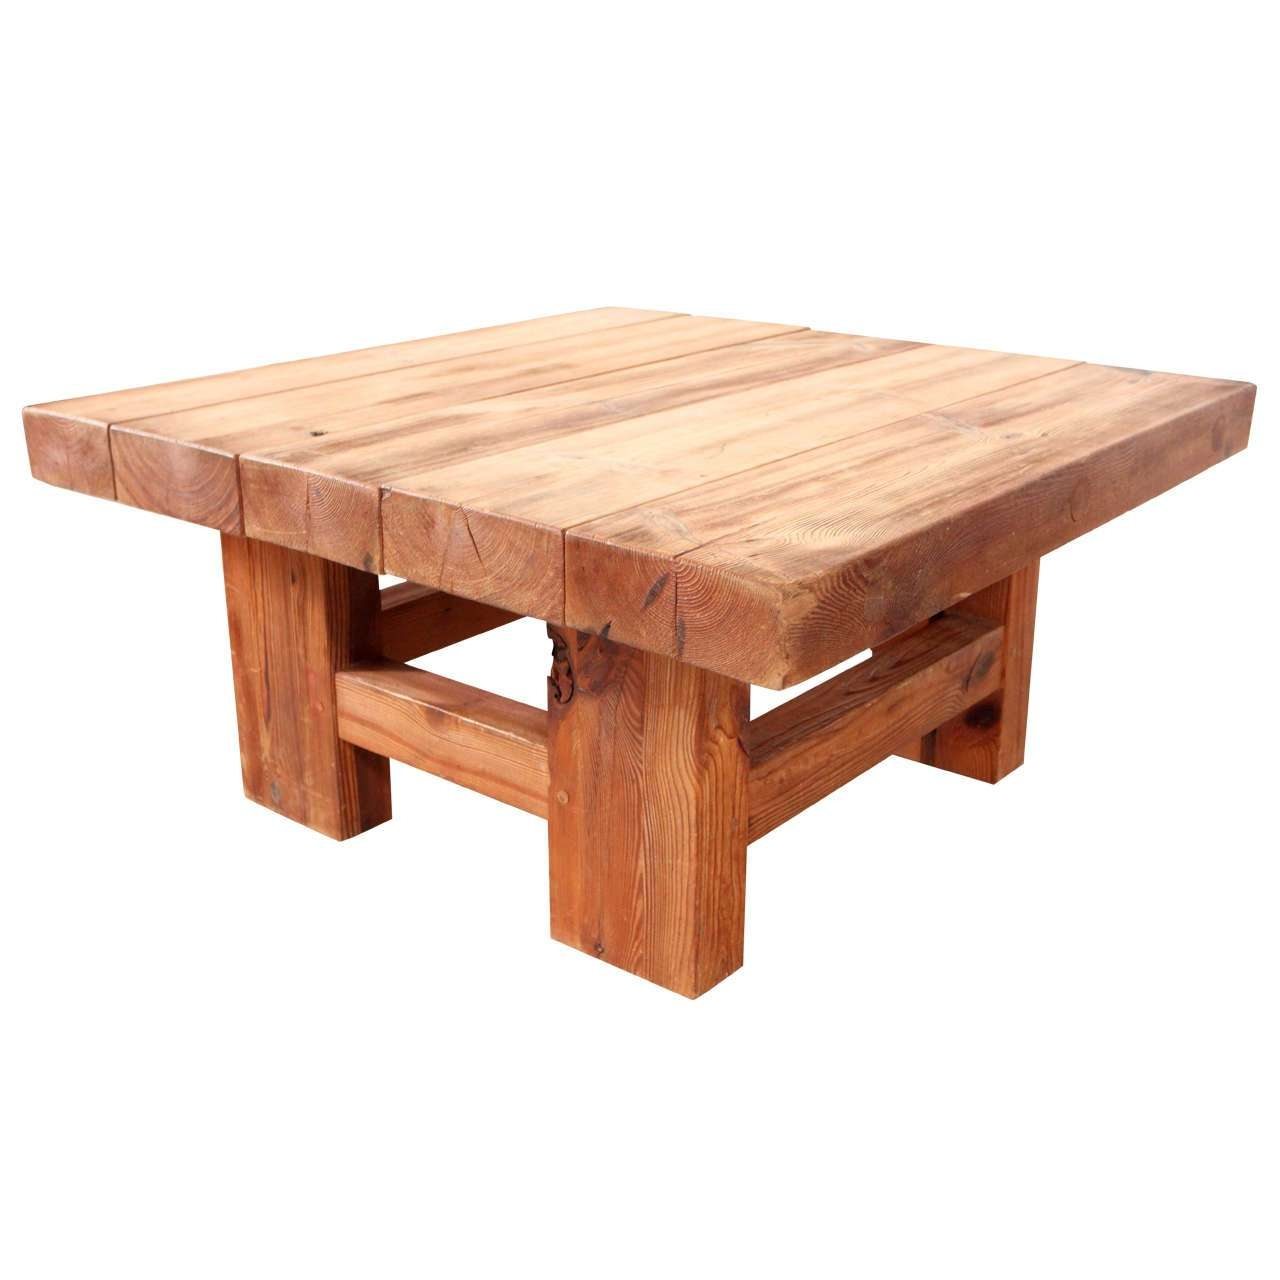 Widely Used Solid Wood Coffee Tables Within Coffee Table : Solid Wood Block Coffee Table Simple Low Rustic (View 19 of 20)